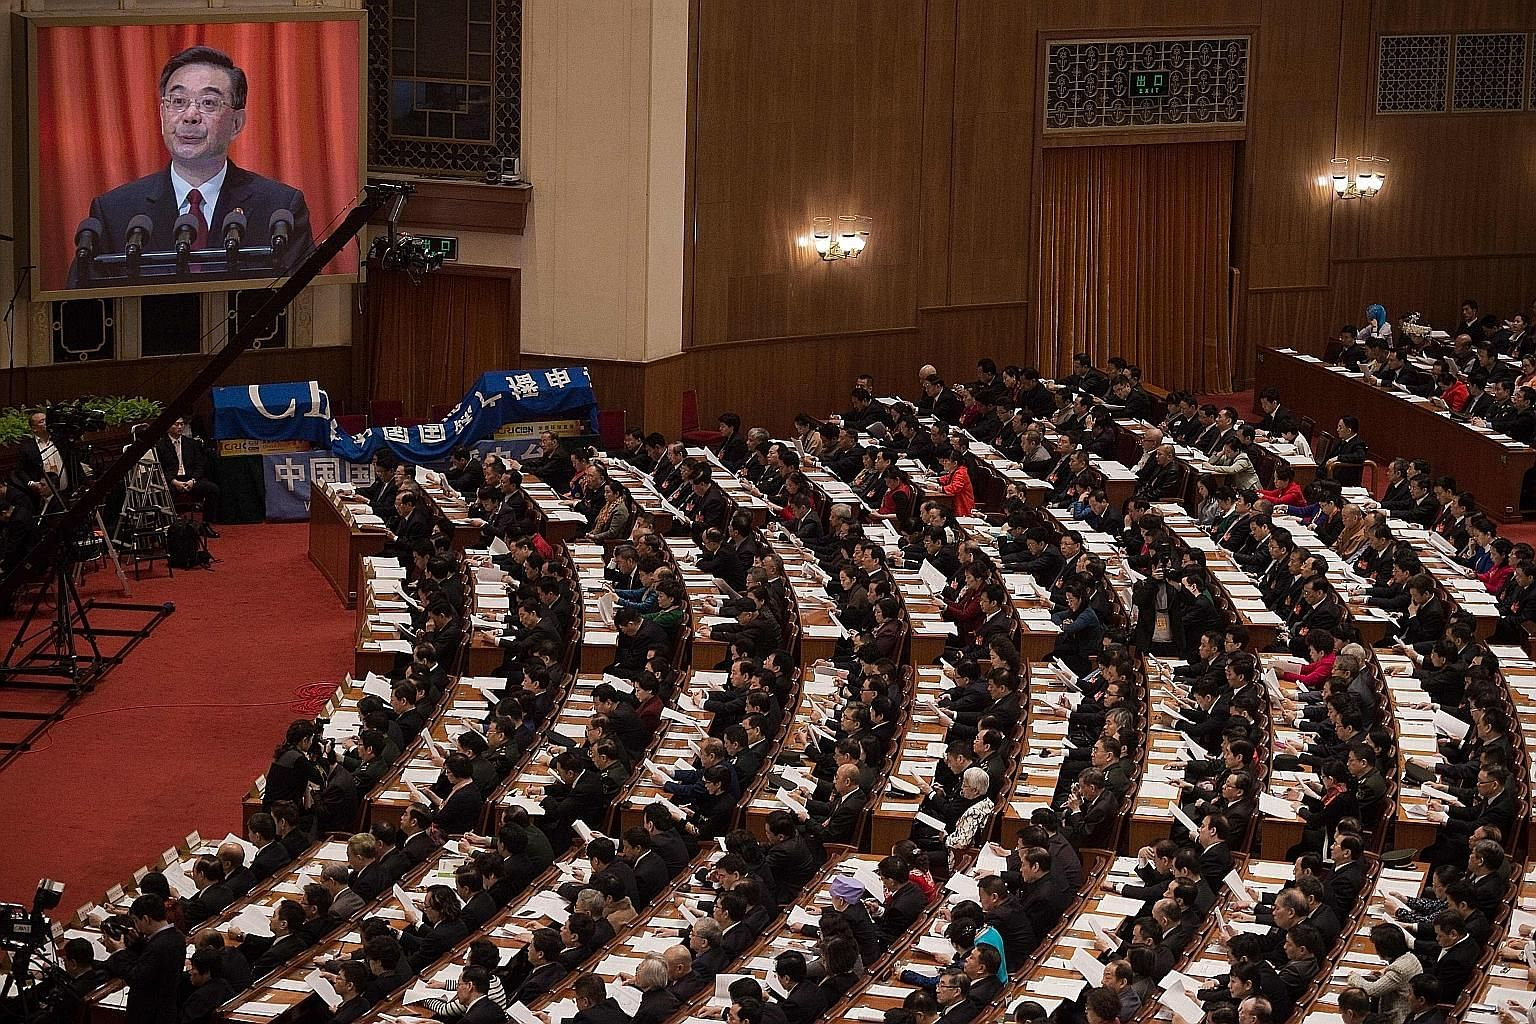 Chief Justice Zhou Qiang giving the report of the Supreme People's Court yesterday. He and Procurator-General Cao Jianming provided updates on the anti-graft situation.